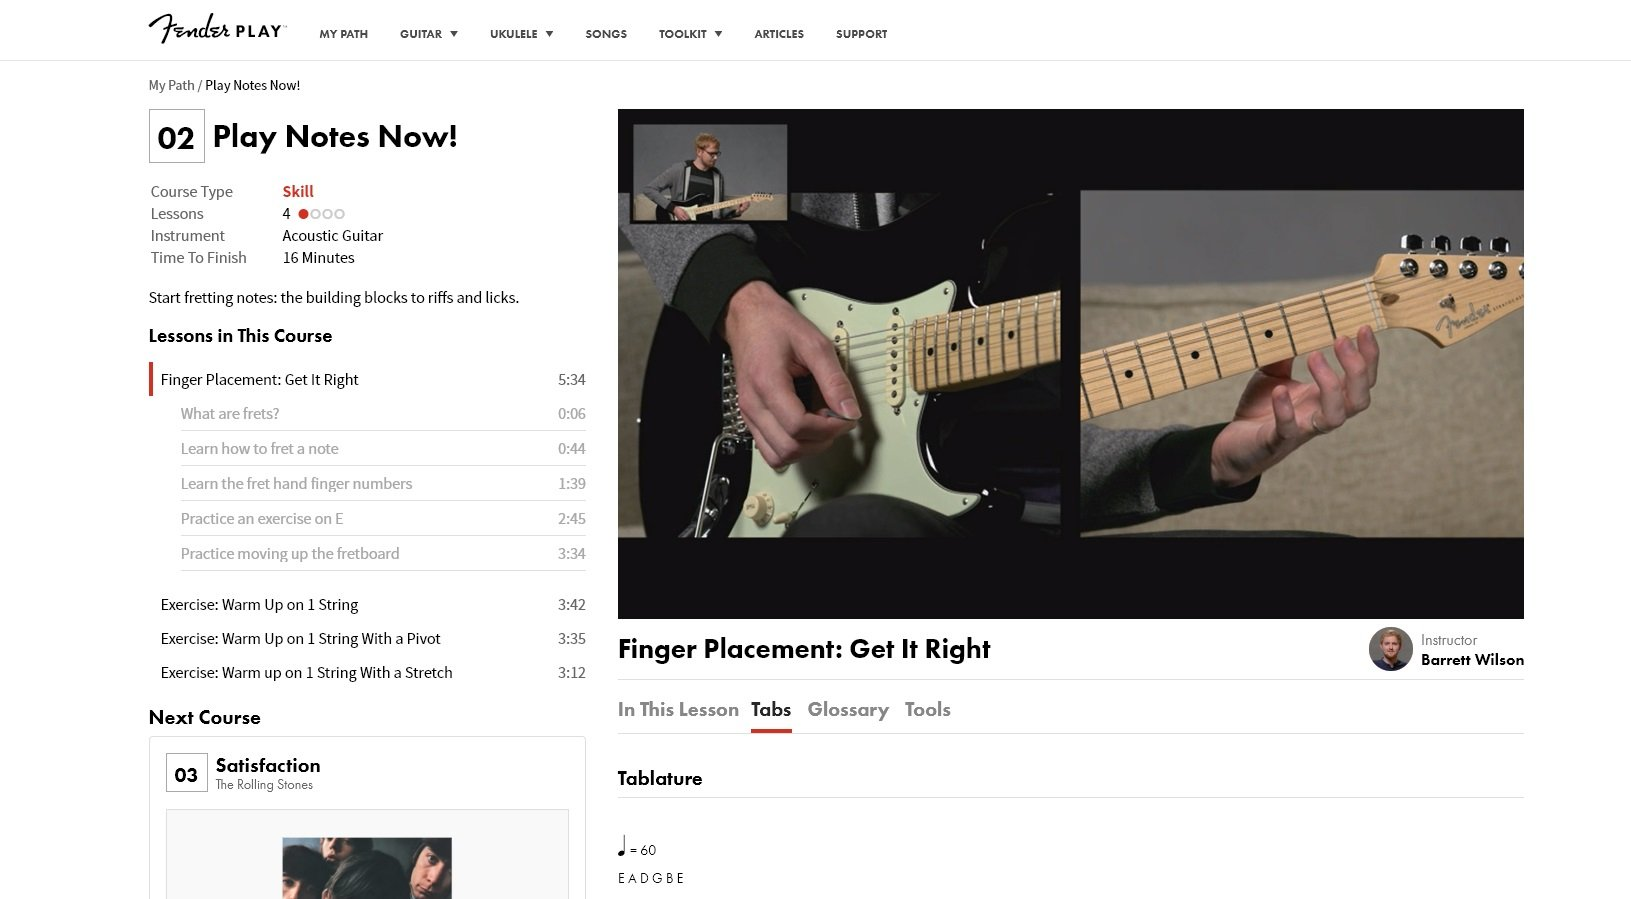 Fender Play Review: Growing Into a Great Platform (2019 Update)